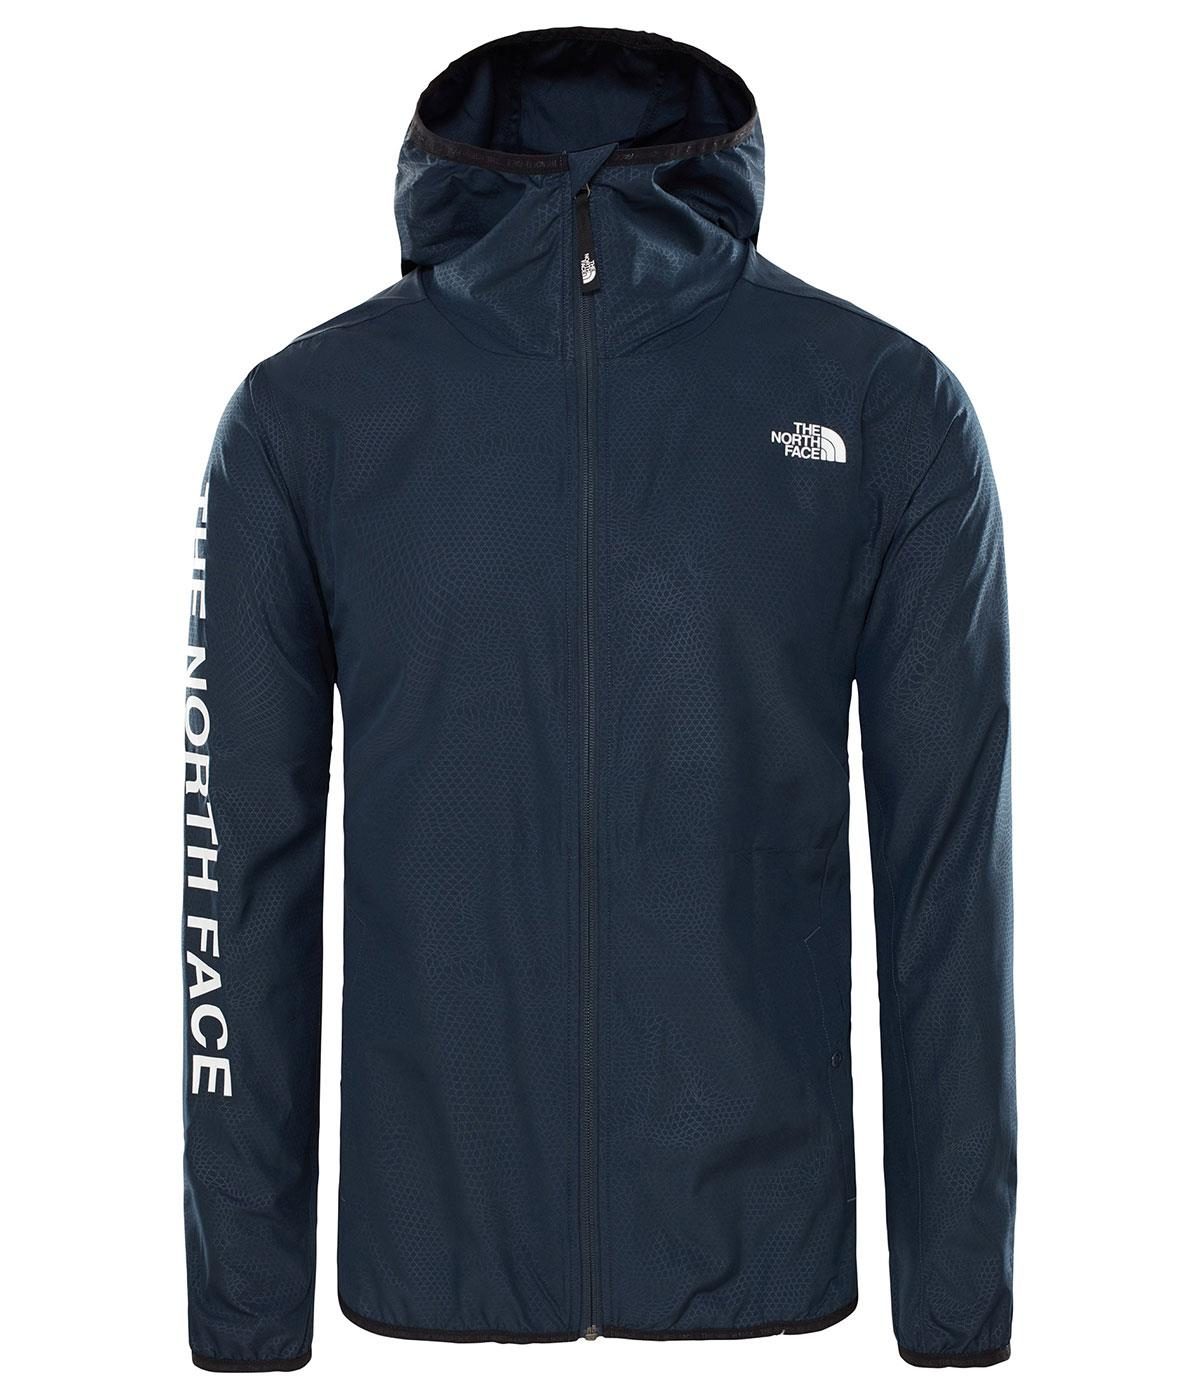 The Northface Erkek Train N Logo Wind Jacket -Eu T93Uwdh2G Ceket